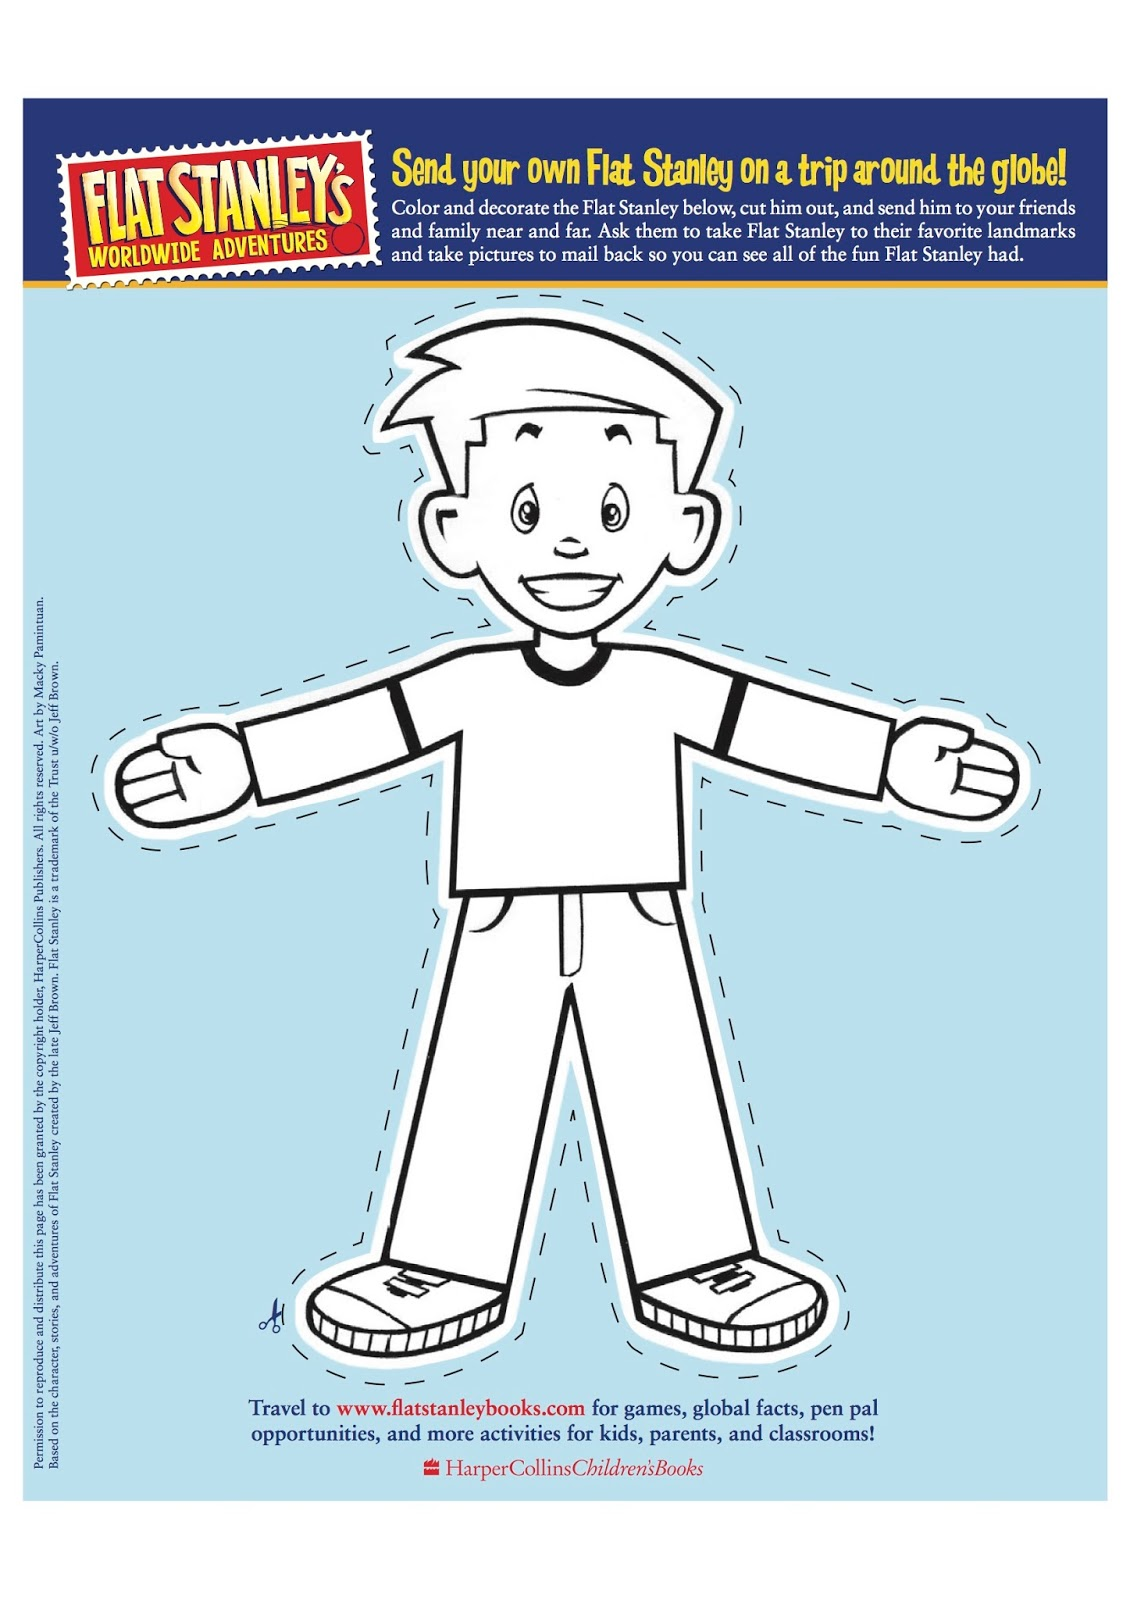 click the link below to print out your own flat stanley to colour jpg 1130x1600 flat [ 1130 x 1600 Pixel ]